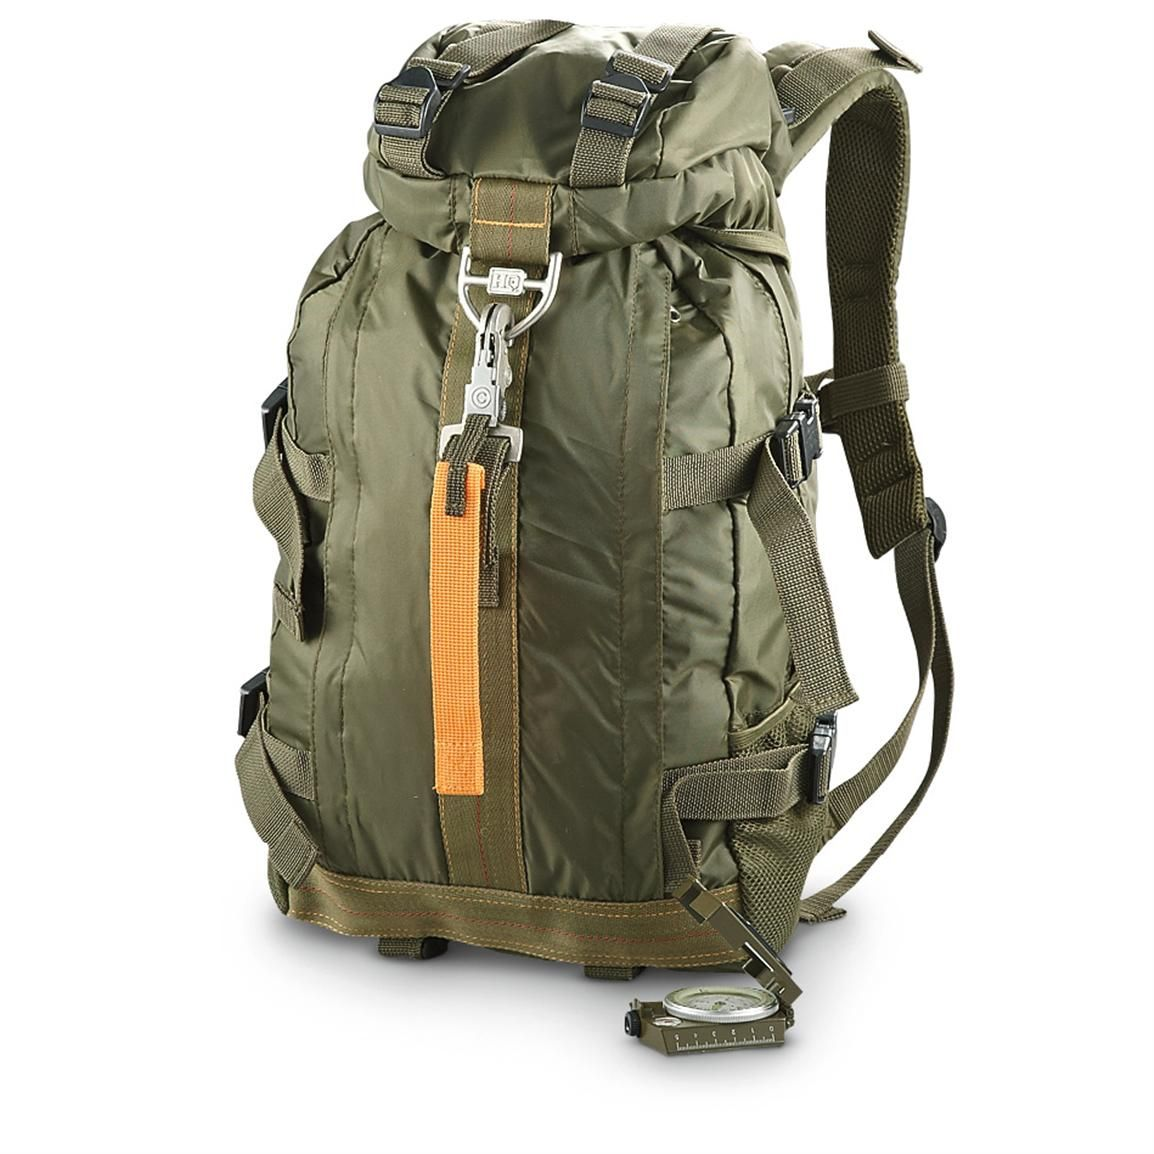 parachute sportsmansguide backpack pack flight